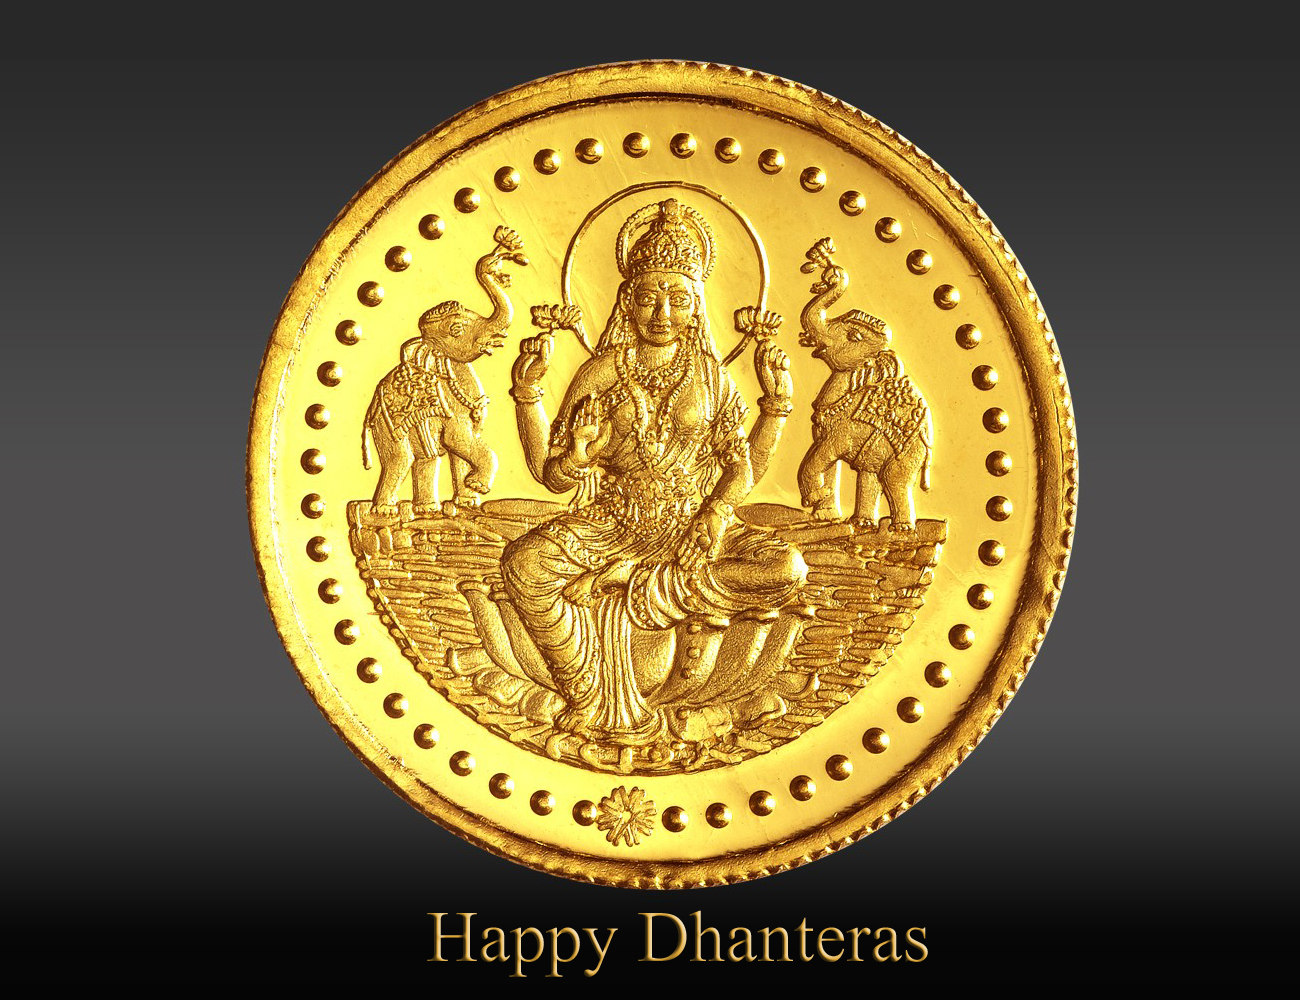 Happy Diwali And Dhanteras Wallpapers: {*AWESOME*} Happy Diwali Greetings